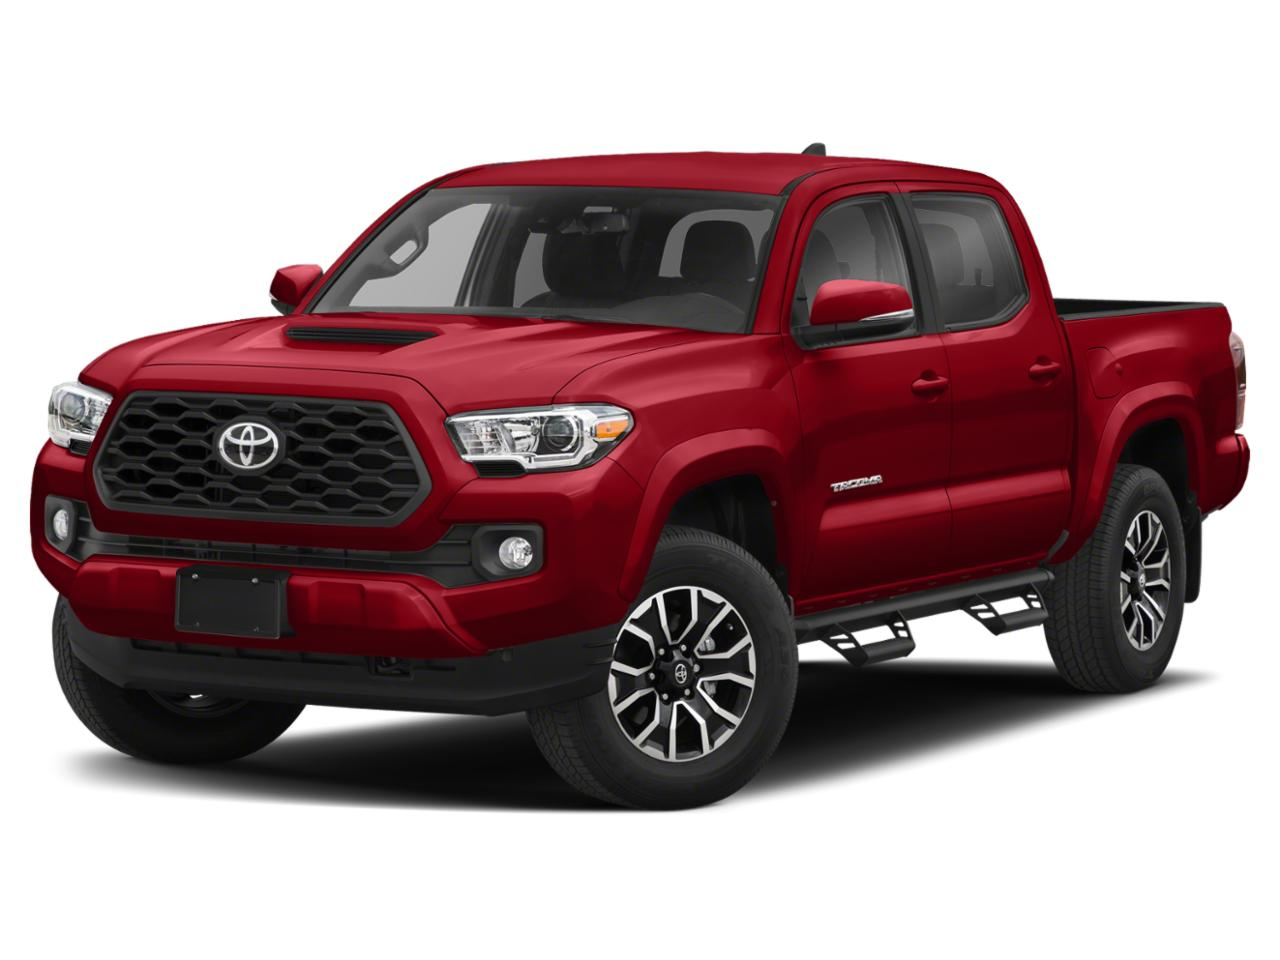 2020 Toyota Tacoma 4WD Vehicle Photo in Plainfield, IL 60586